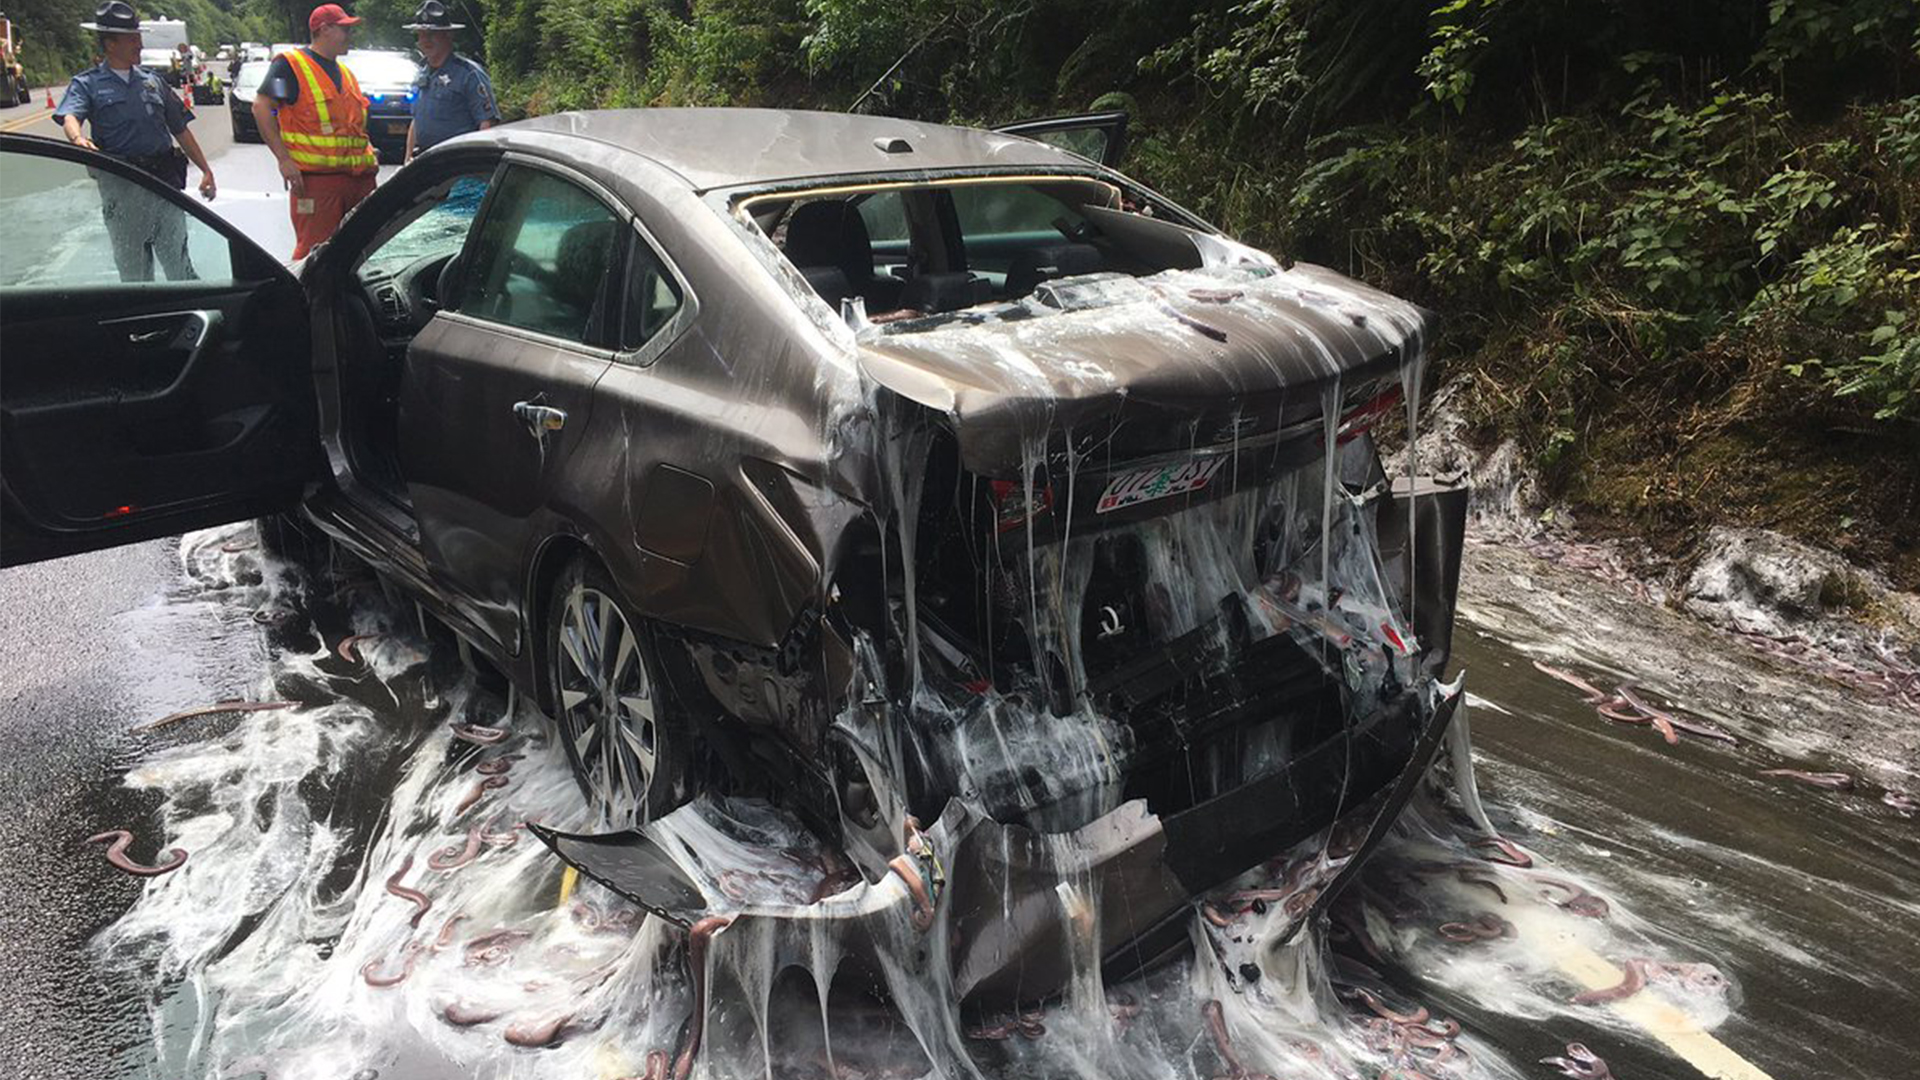 Watch: 'Slime Eels' Explode On Highway After Bizarre